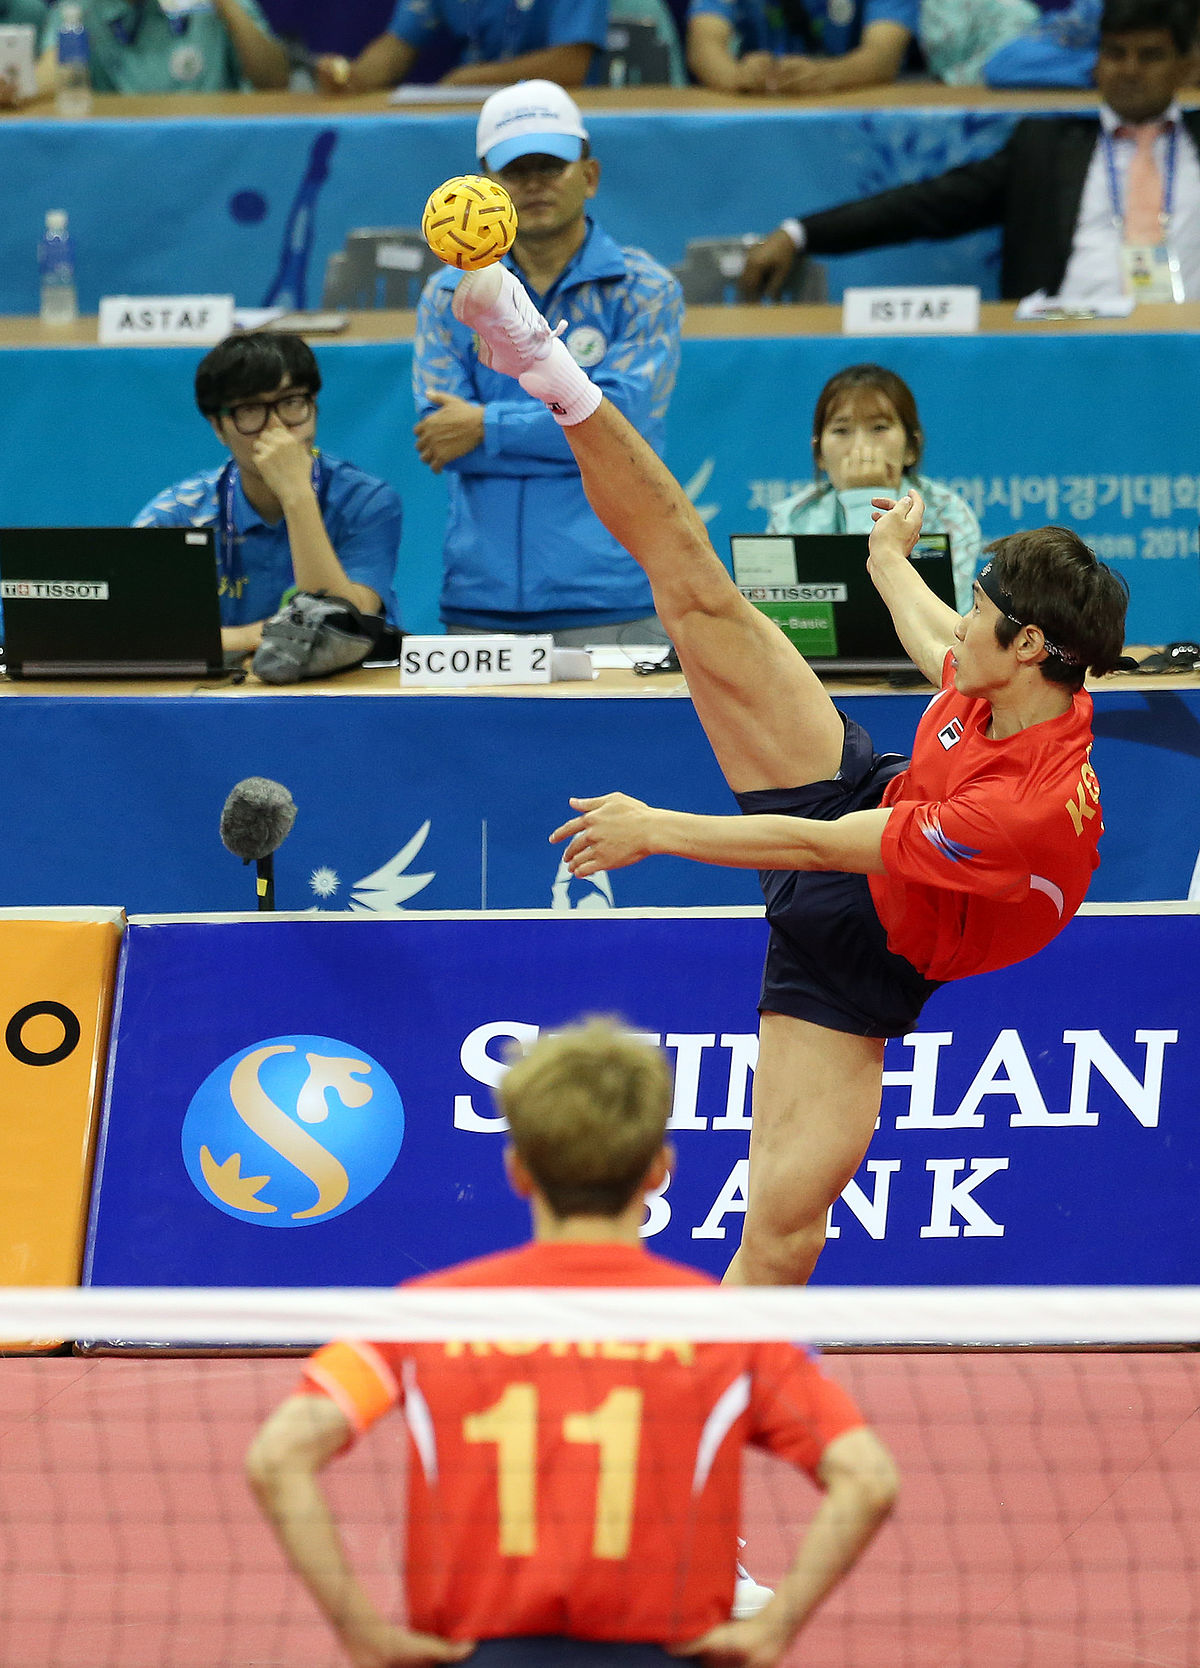 Sepak takraw at the 2014 Asian Games - Wikipedia